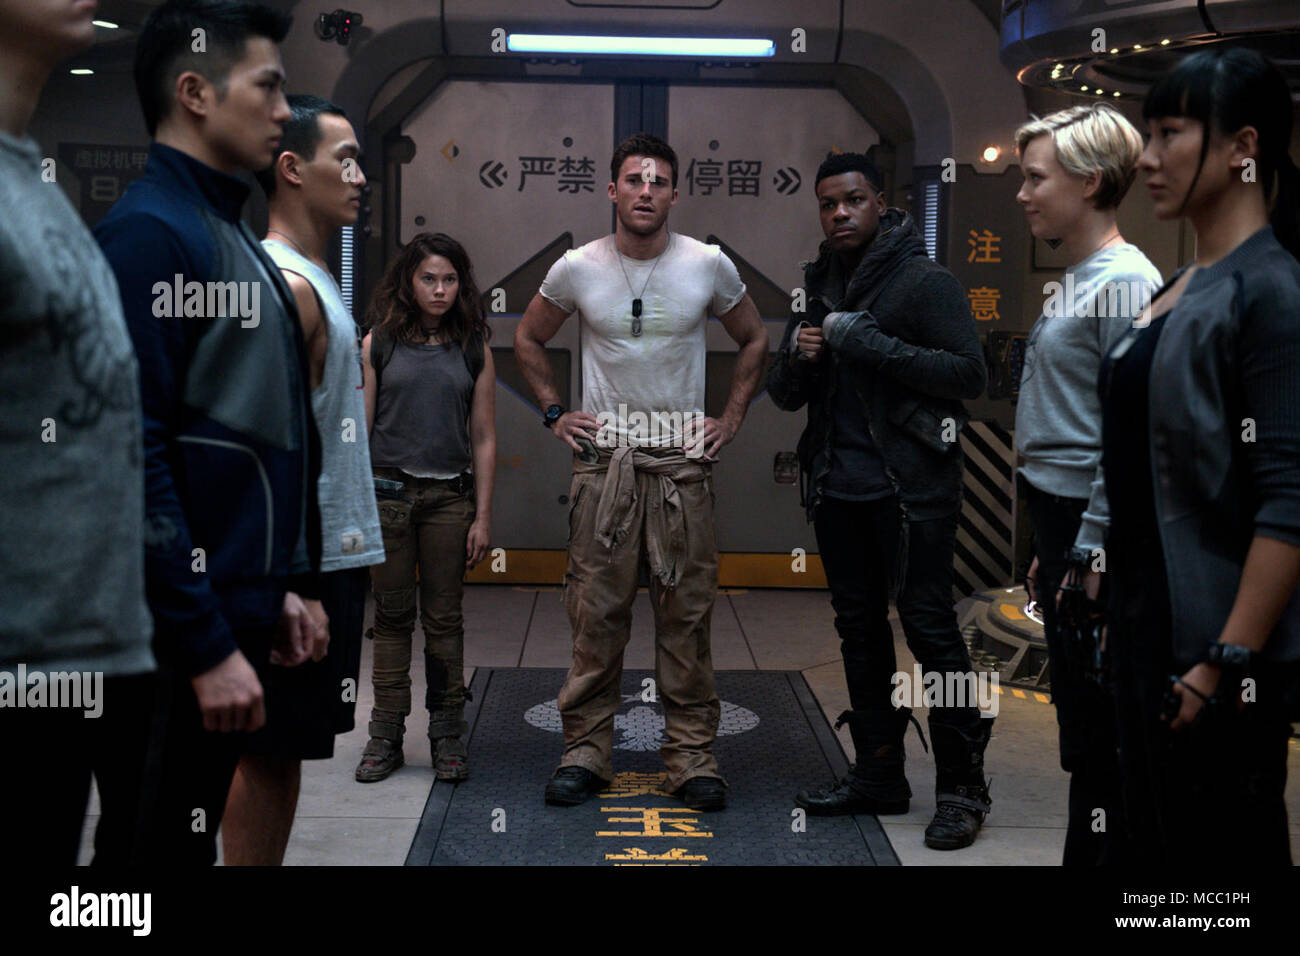 Pacific Rim Uprising is an upcoming American science fiction monster film directed by Steven S. DeKnight and written by DeKnight, Emily Carmichael, Kira Snyder, and T.S. Nowlin from a story by DeKnight and Nowlin. It is the sequel to the 2013 film Pacific Rim, and stars John Boyega, Scott Eastwood.  This photograph is for editorial use only and is the copyright of the film company and/or the photographer assigned by the film or production company and can only be reproduced by publications in conjunction with the promotion of the above Film. A Mandatory Credit to the film company is required. T Stock Photo